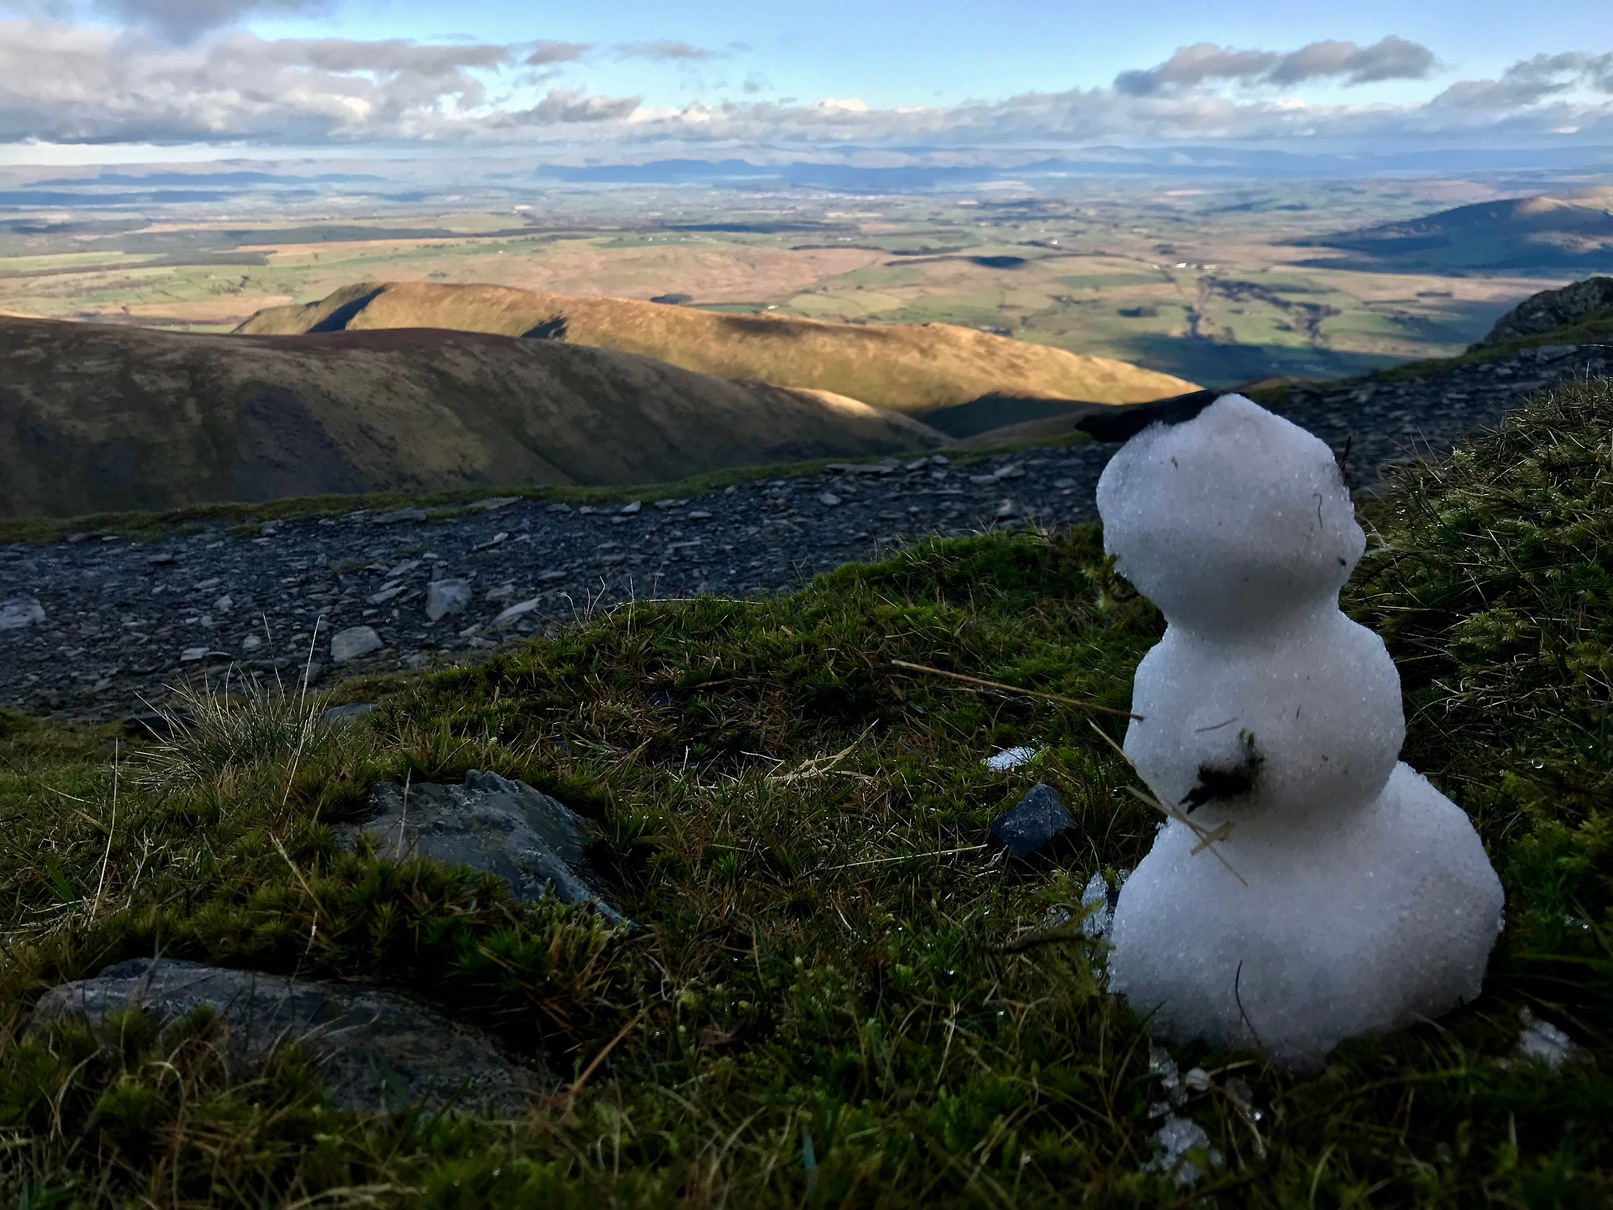 A snowman at the peak of Blencathra